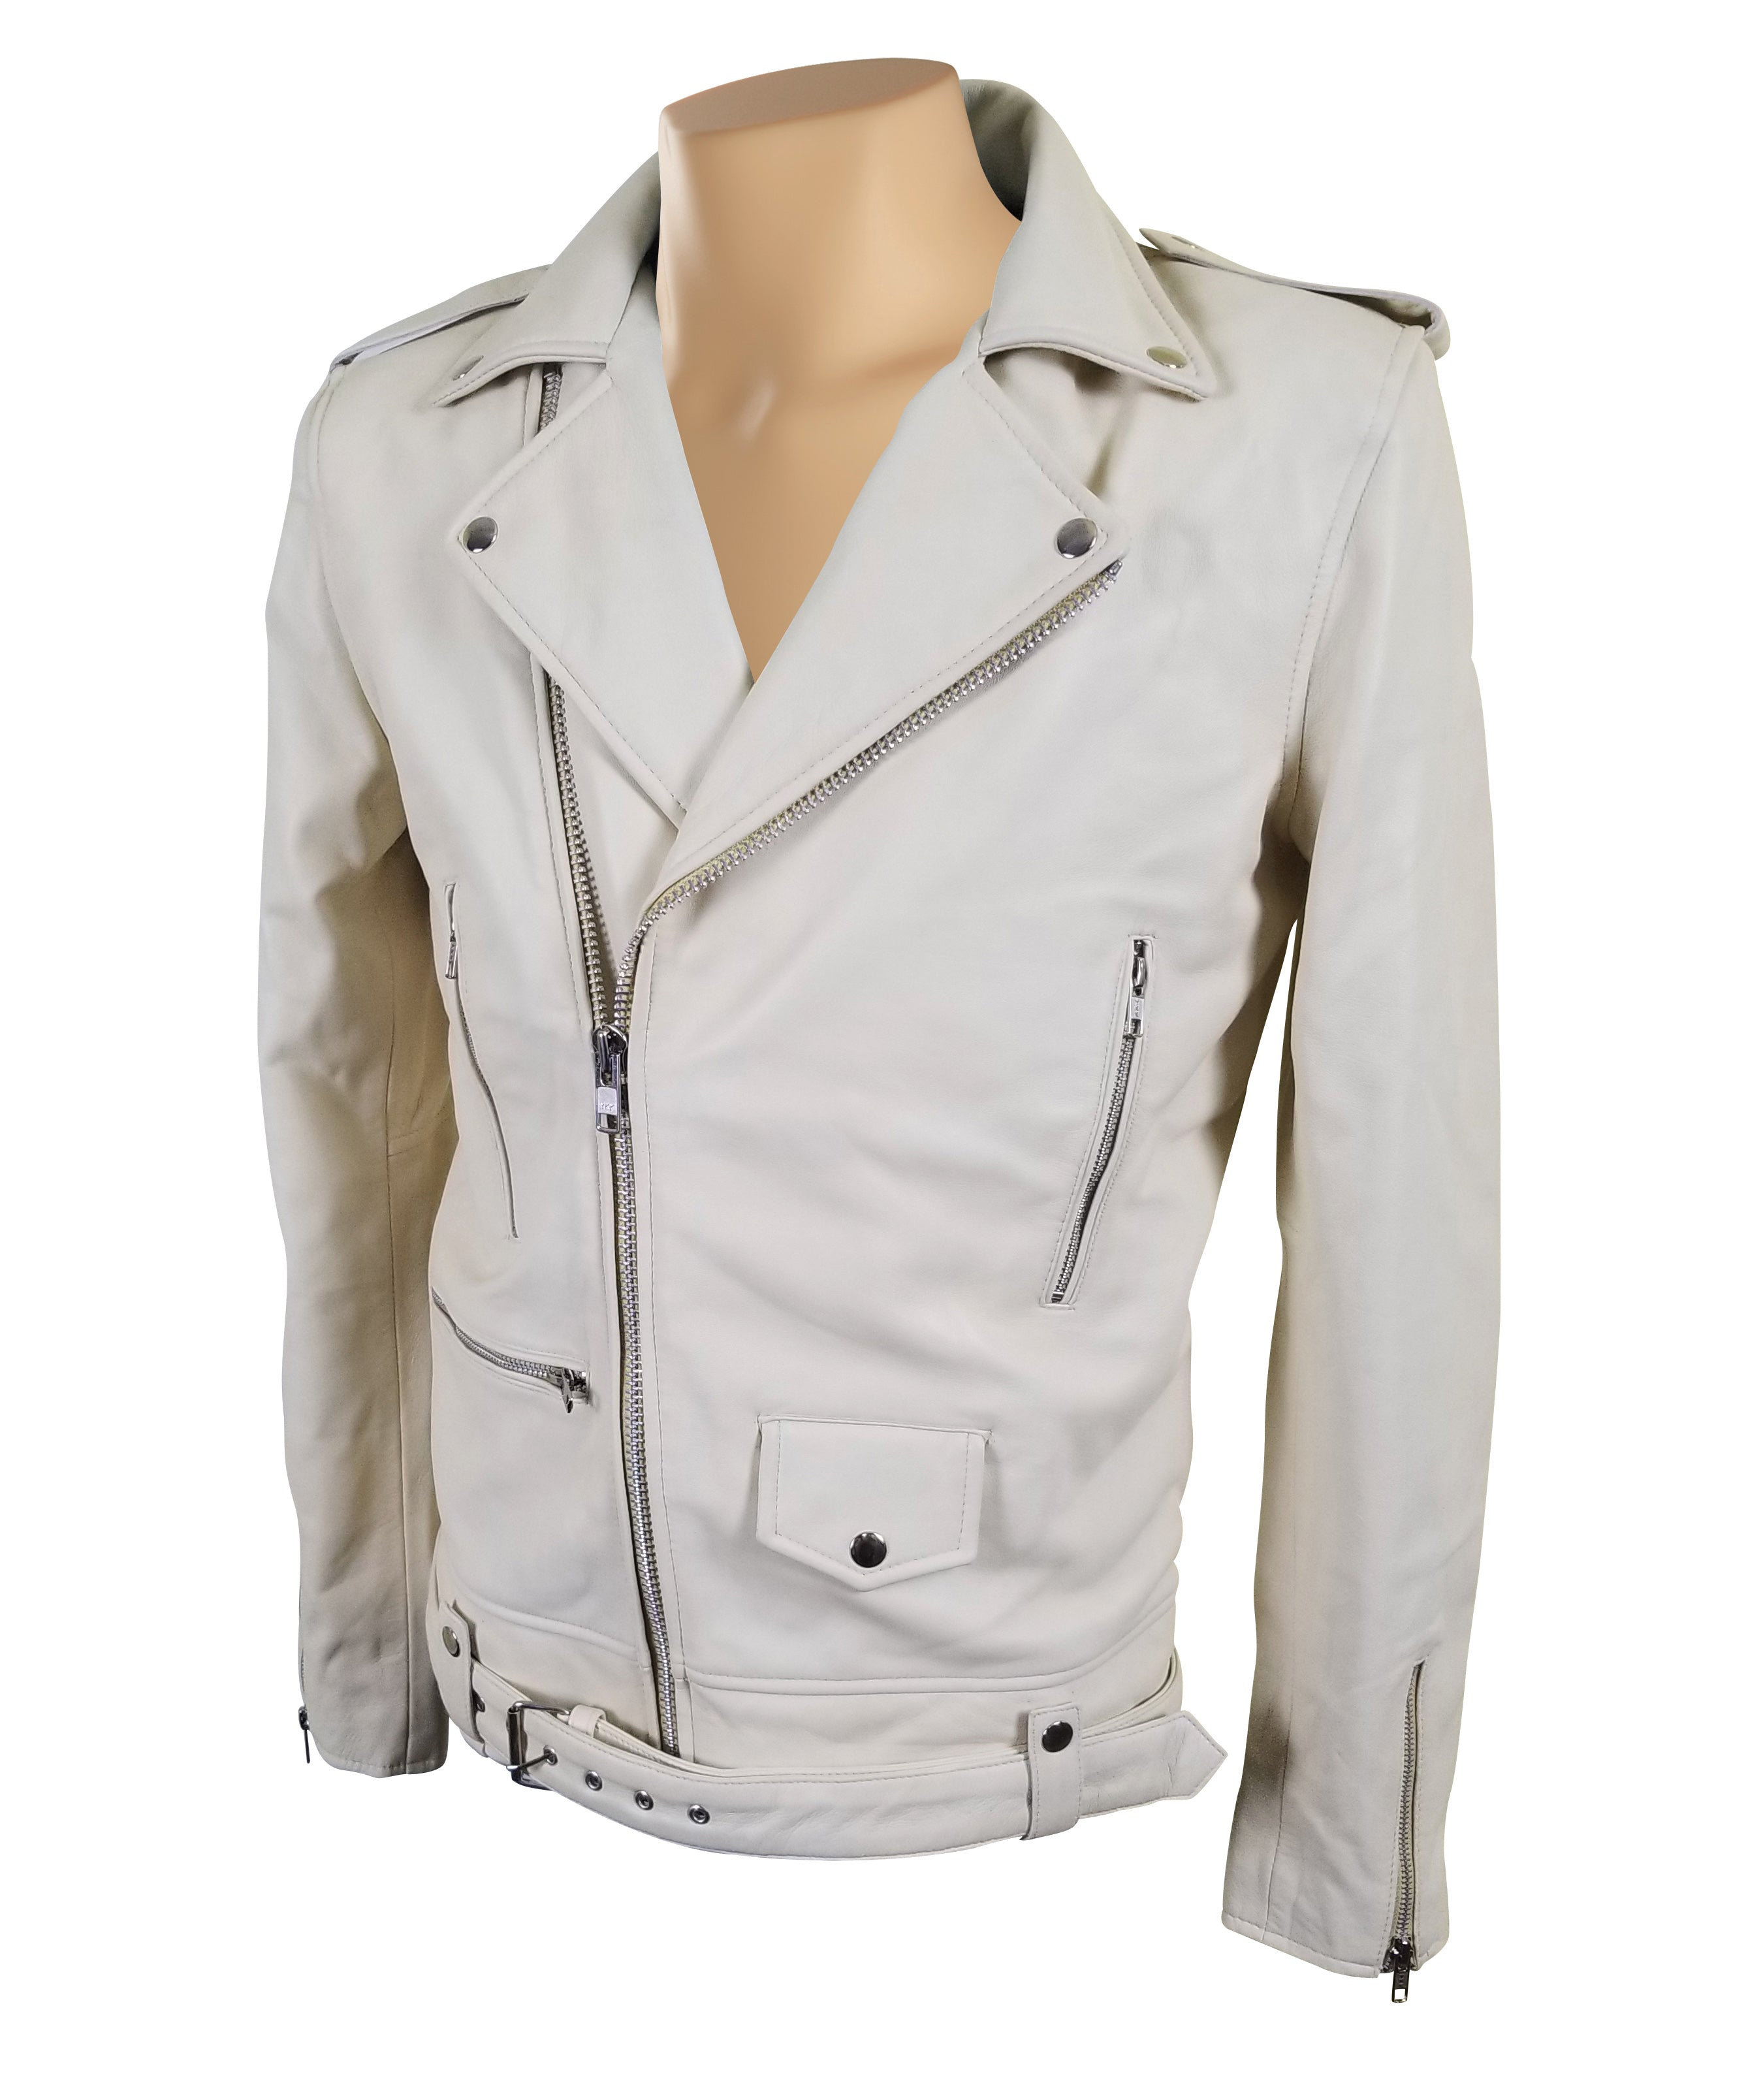 Holman's Cream color Biker Perfecto leather jacket with waist belt